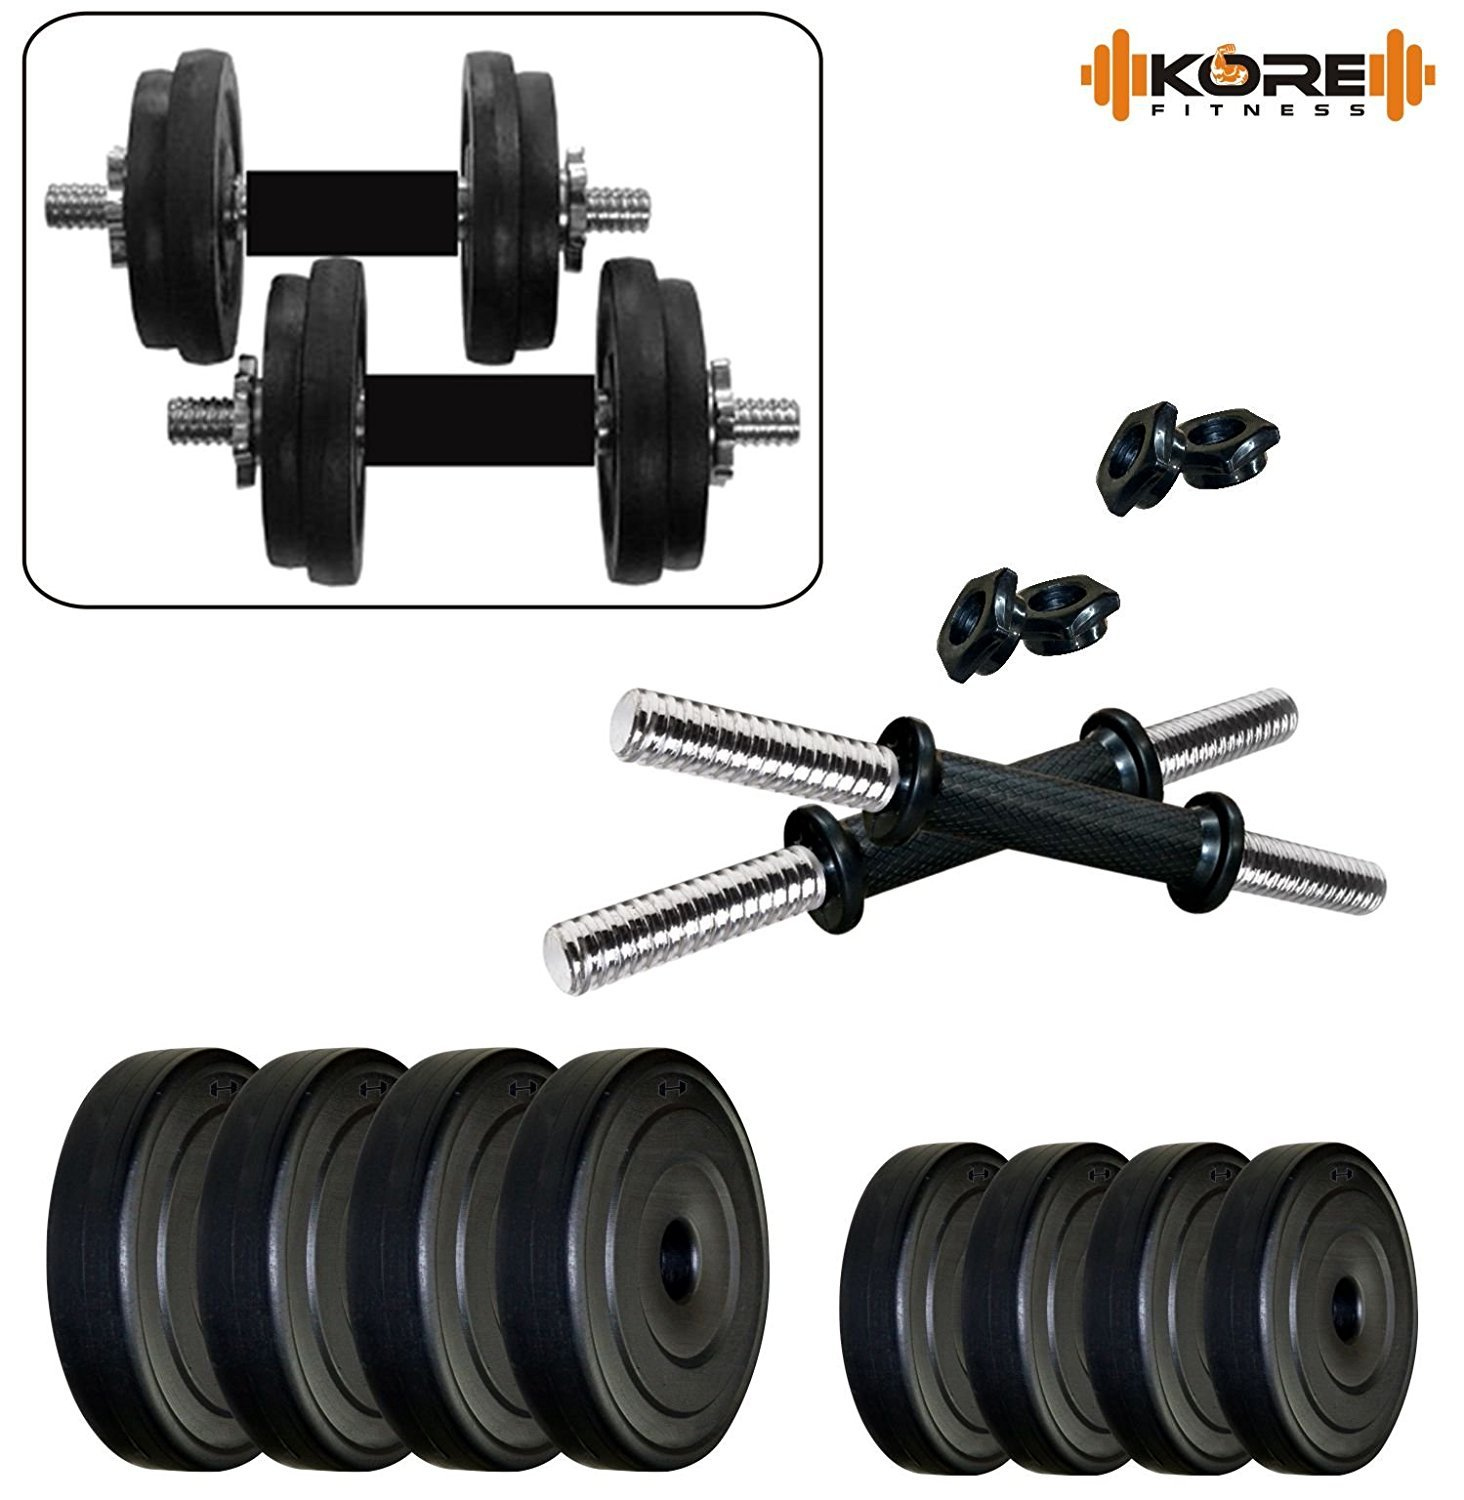 KORE DM-8KG-COMBO16 Home gym & Fitness Kit